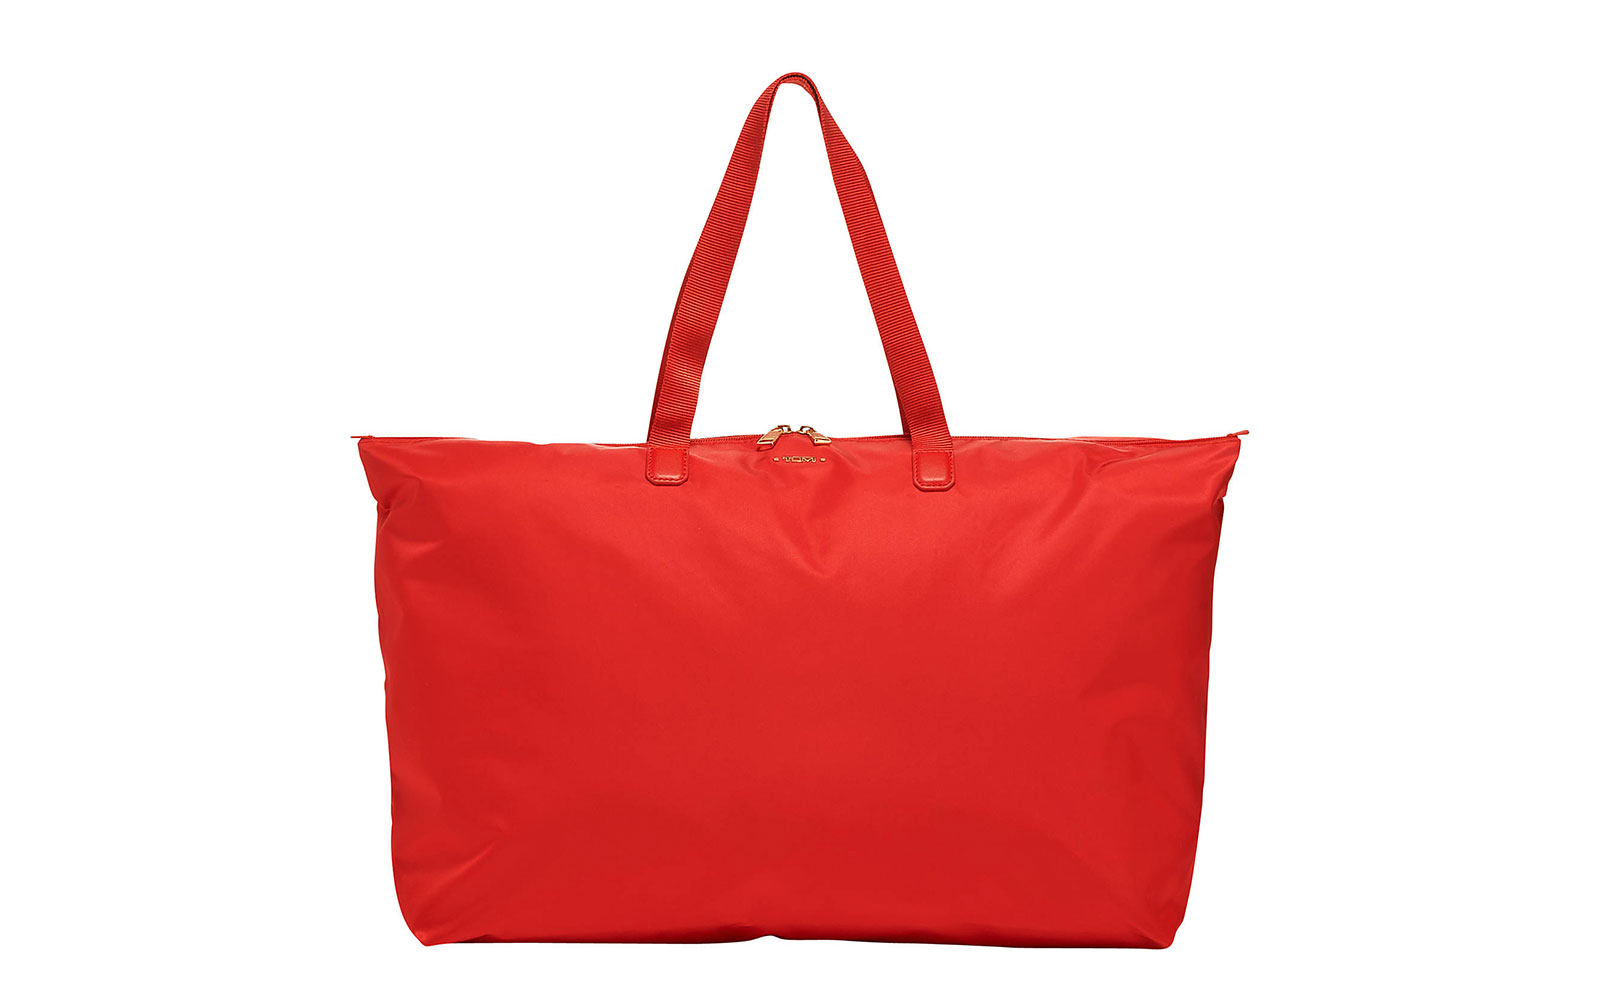 Tumi Voyageur Just In Case Tote in Sunset